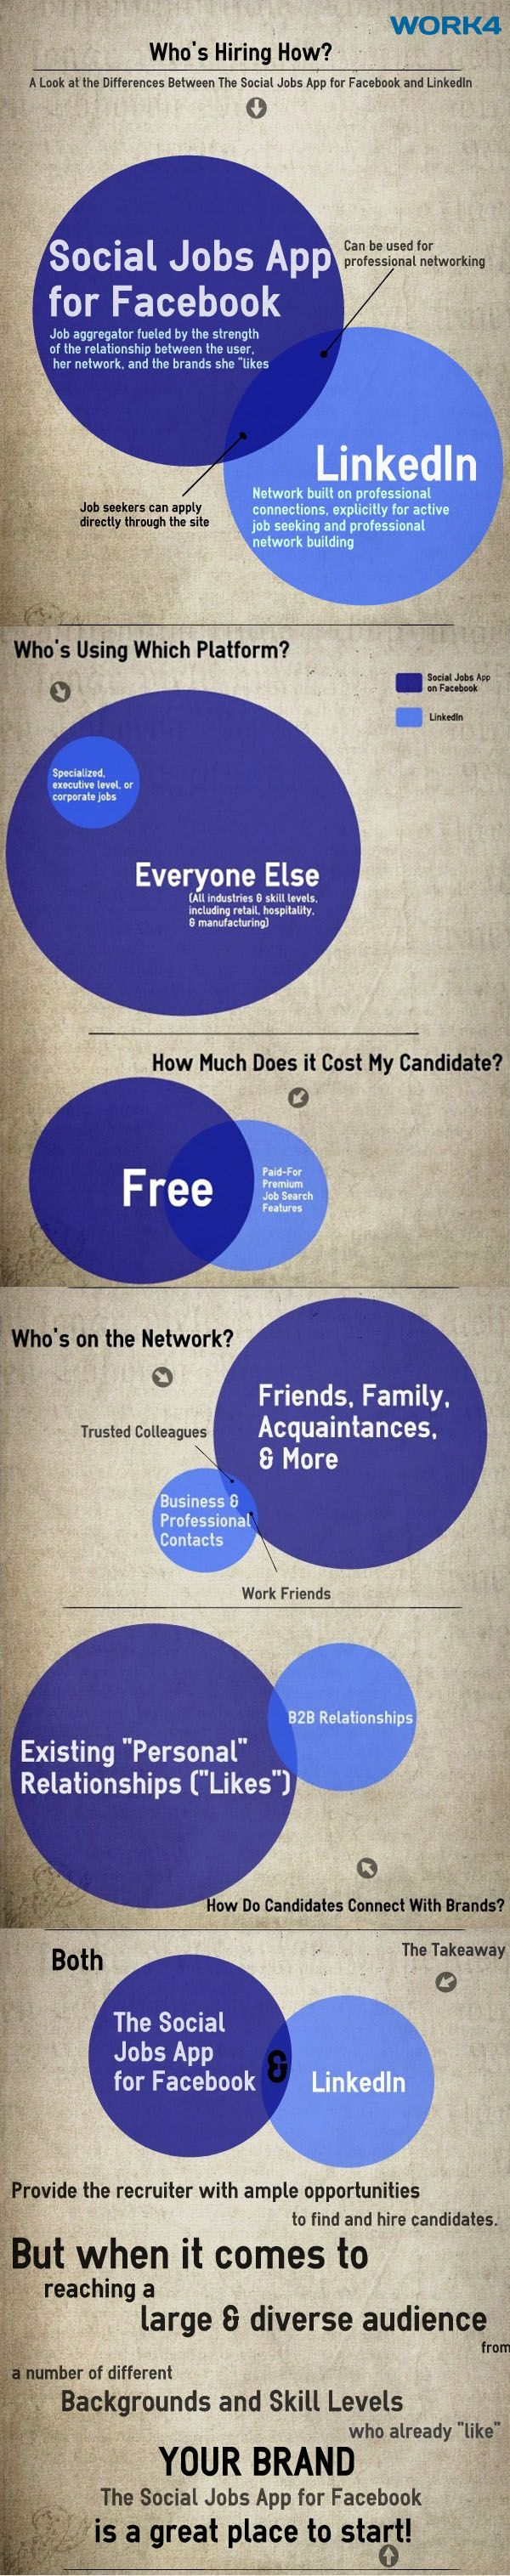 INFOGRAPHIC: How Does Facebook's Social Jobs Partnership App Compare With LinkedIn?